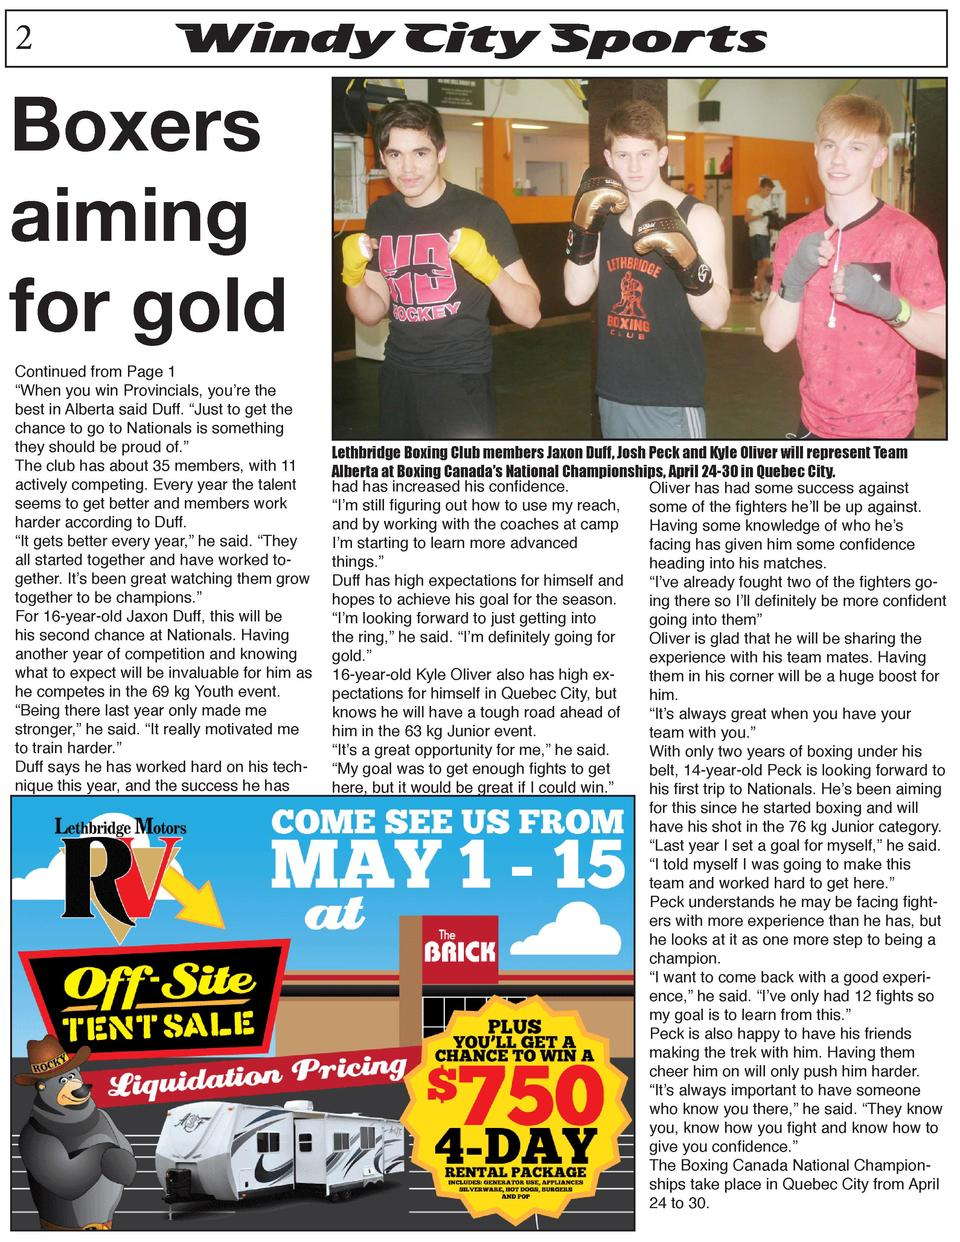 2  Windy City Sports  Boxers aiming for gold  Continued from Page 1    When you win Provincials, you   re the best in Albe...